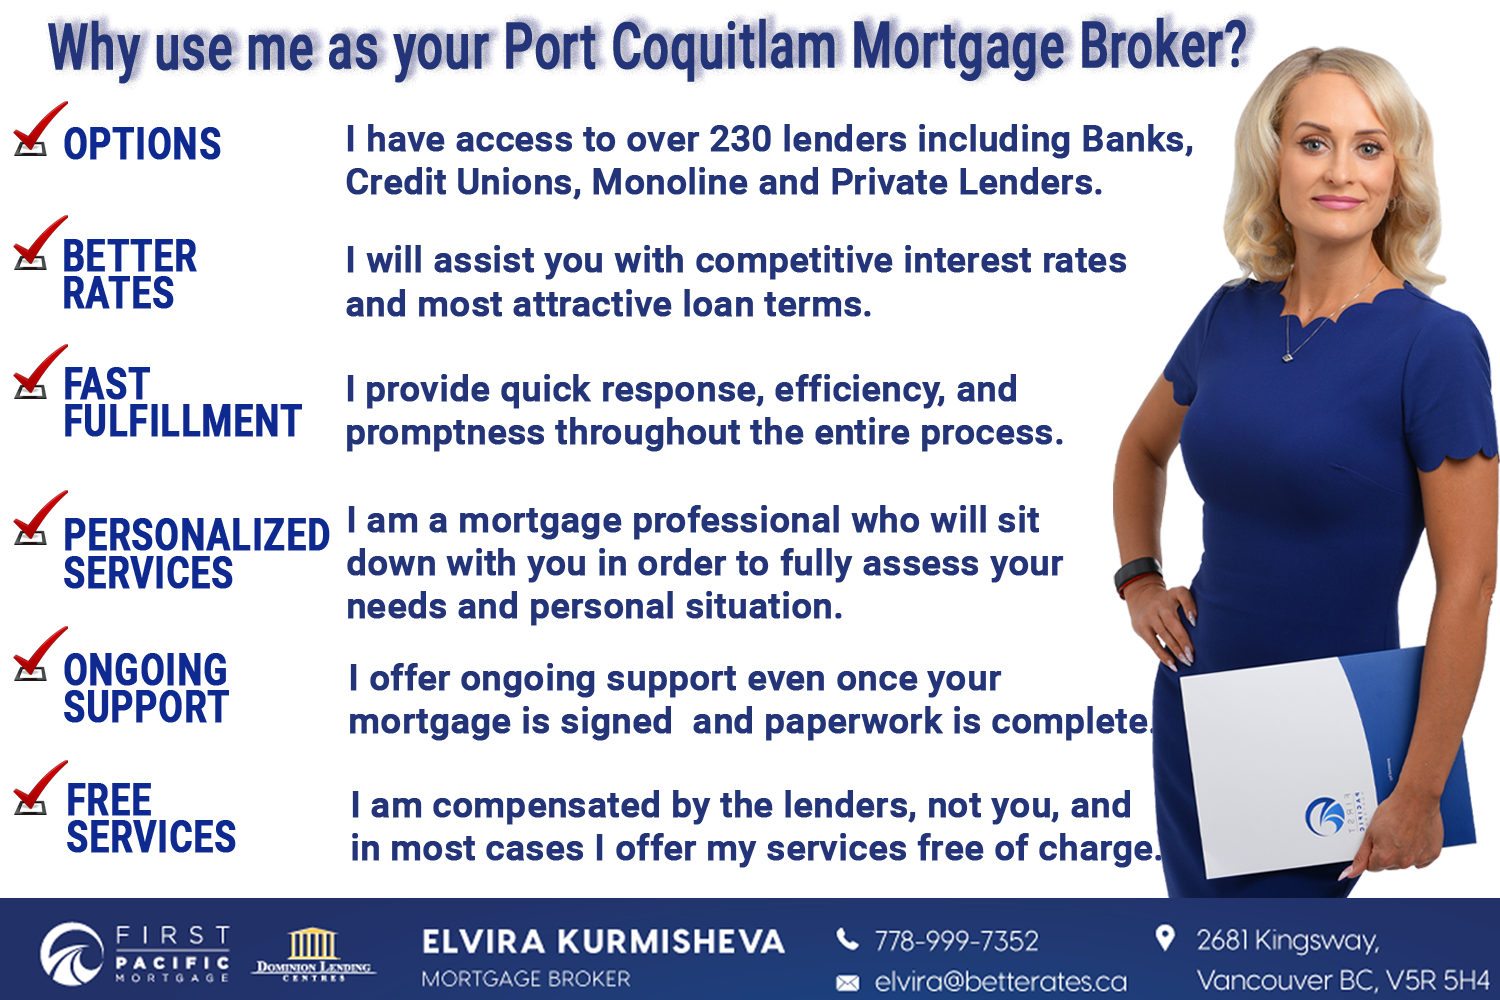 Picture of Port Coquitlam mortgage broker